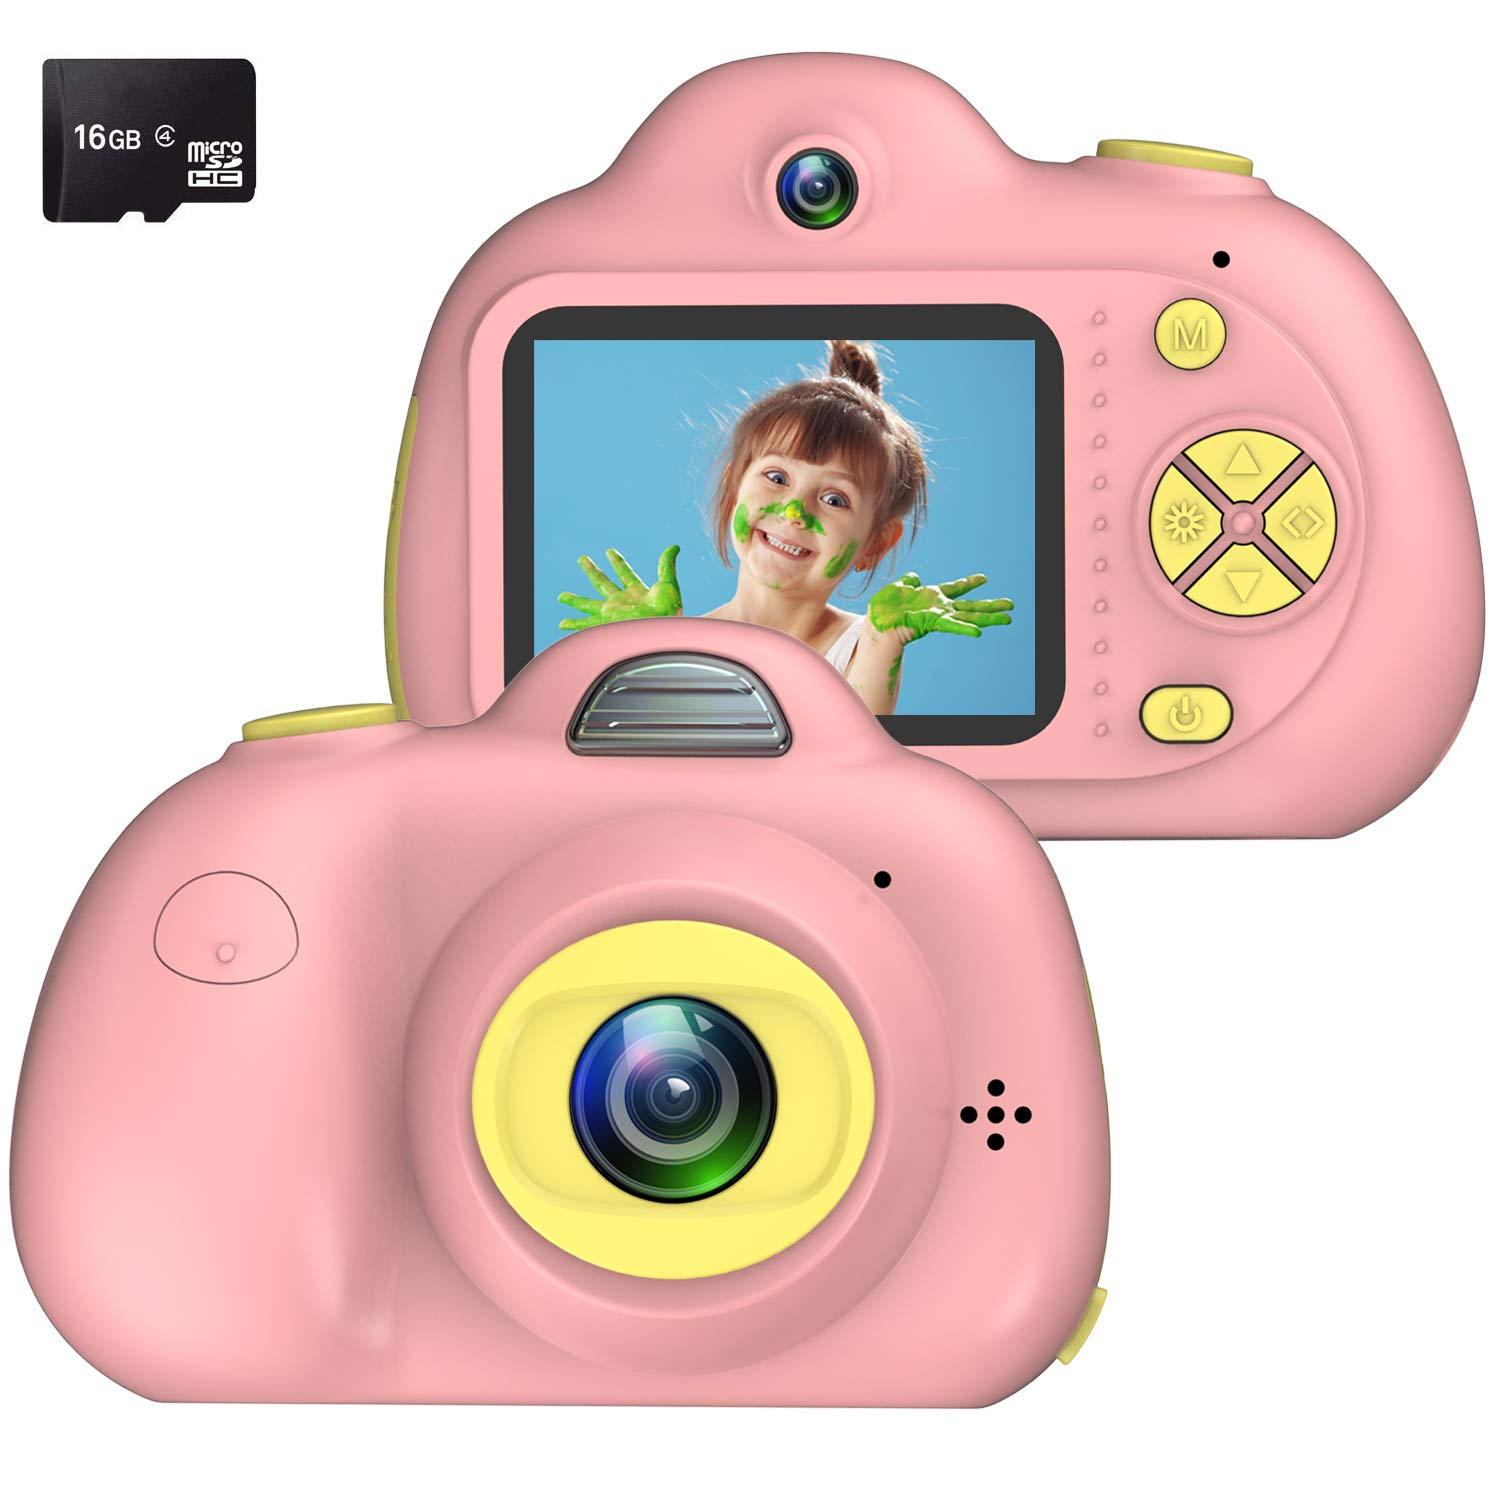 Kids Camera, Dual Cameras 8MP Rechargeable 1080p HD Kids Video Cameras Shockproof Kids Digital Cameras - Best Gift for 4-10 Years Old Girls Boys Party Outdoor Play 16GB TF Card Included (Pink)